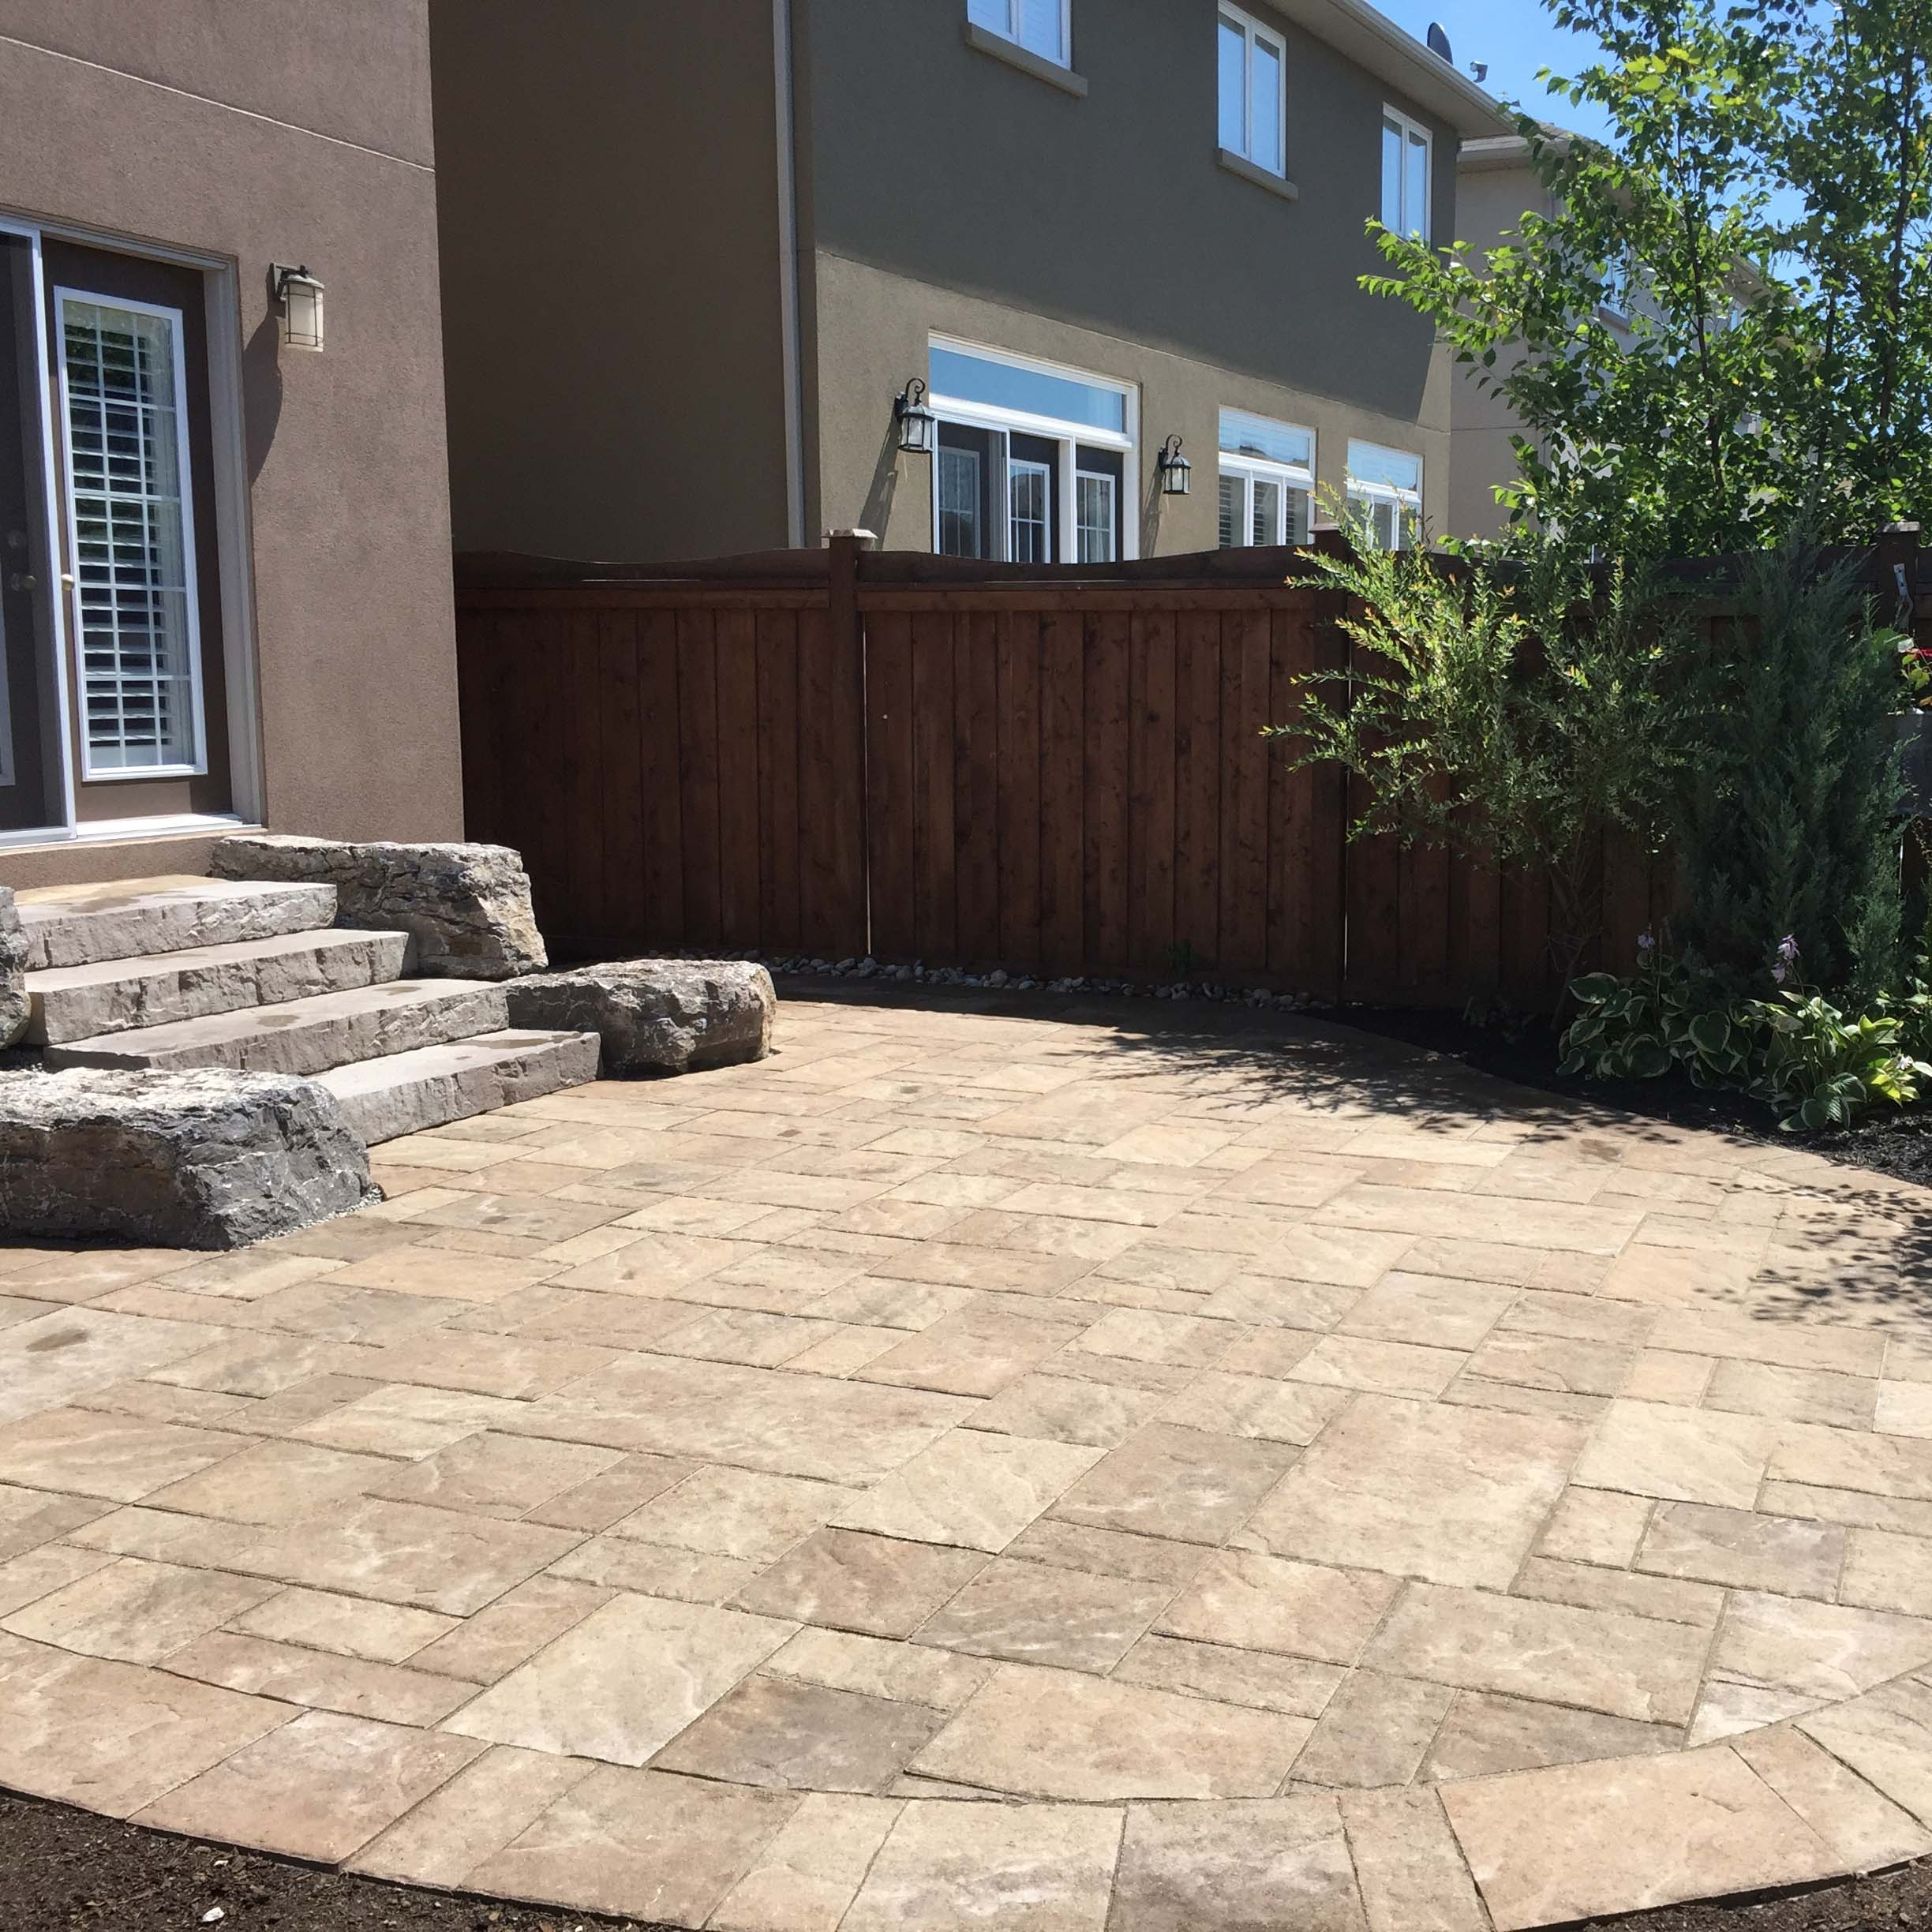 trends patio designs flagstone backyard pictures kitchens kitchen ne and with patios amp outdoor omaha fascinating